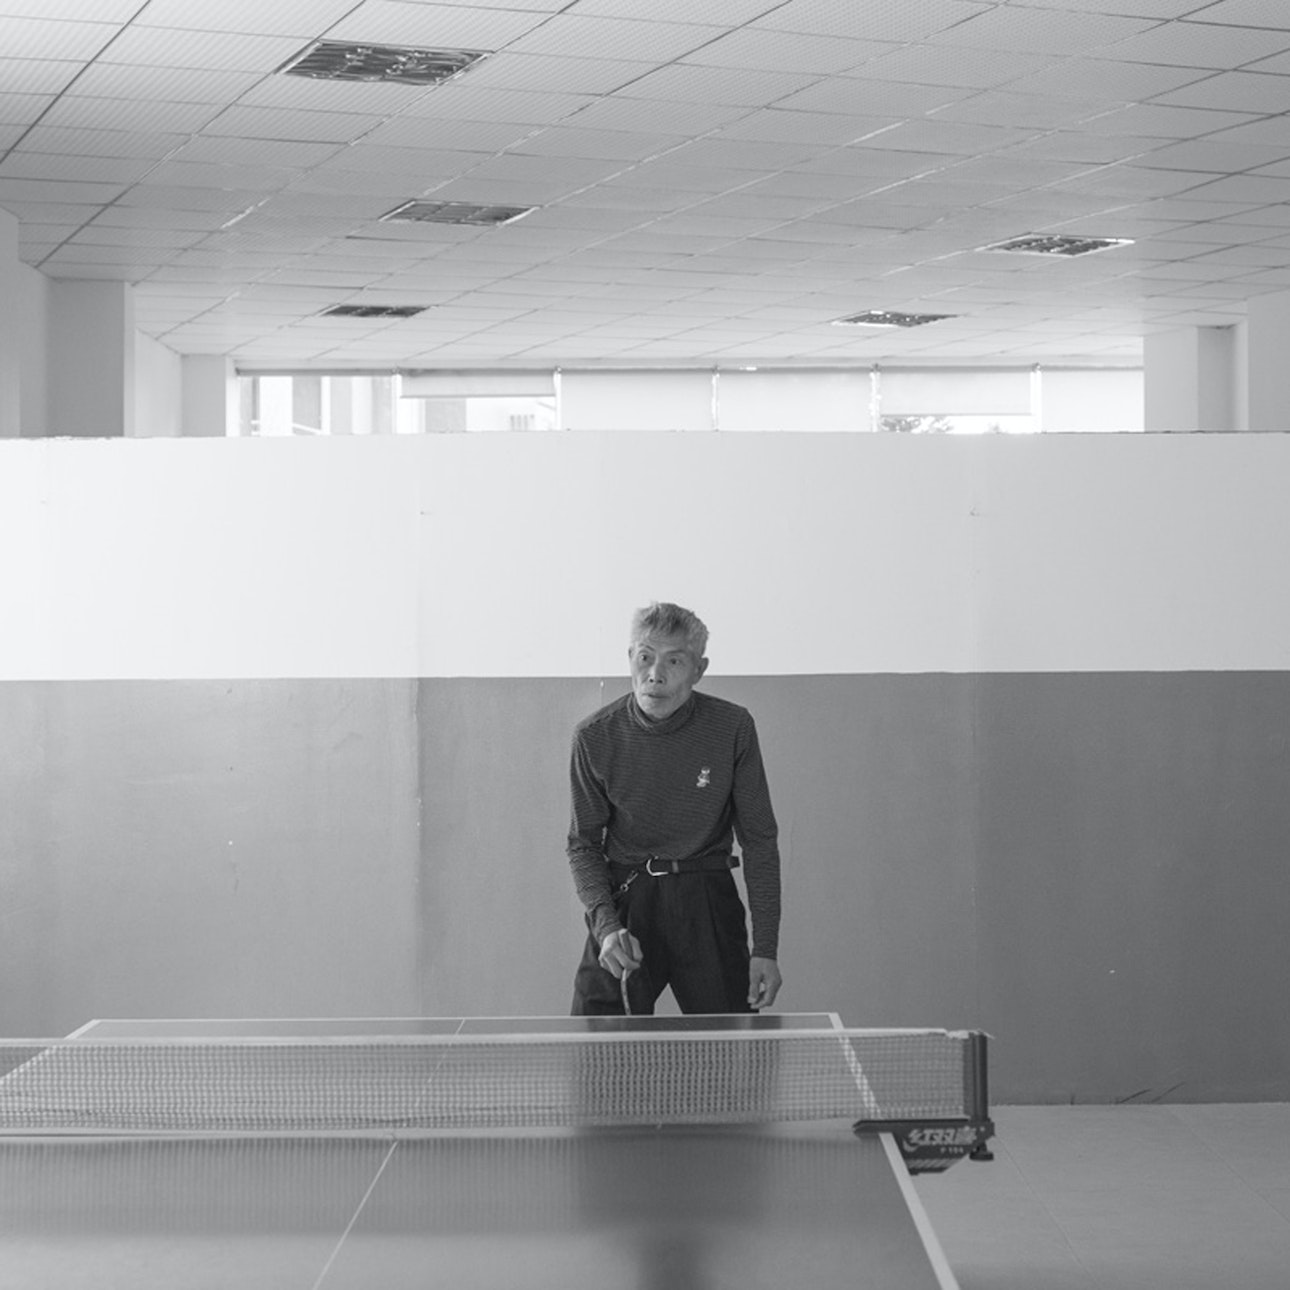 An officer enjoys a game of table tennis.